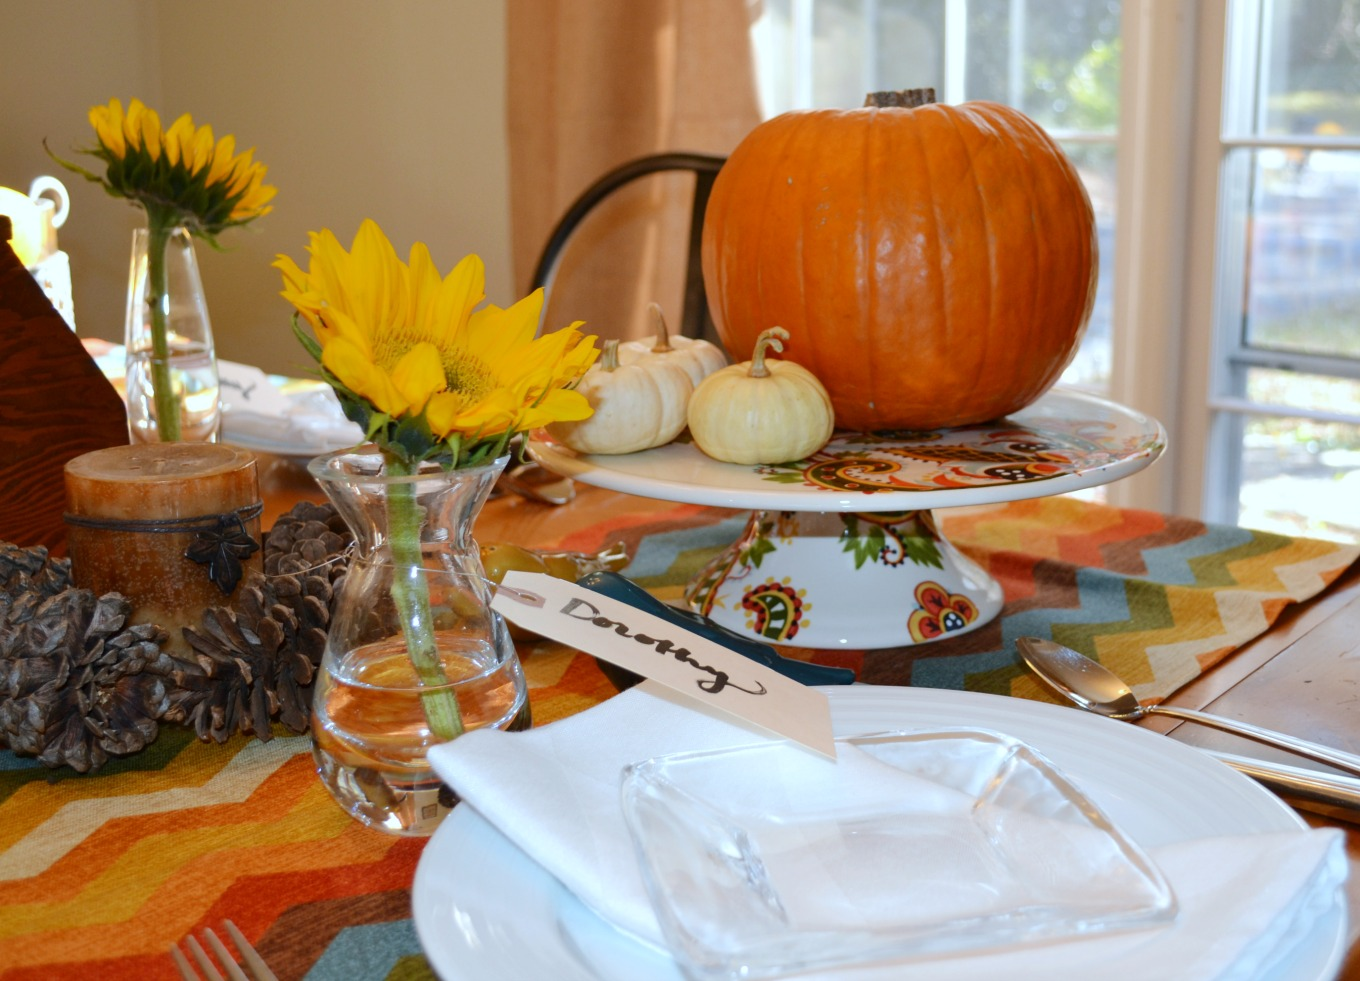 Arranging pumpkins on a colorful cake plate is an easy way to bring natural elements to your Thanksgiving table - thediybungalow.com